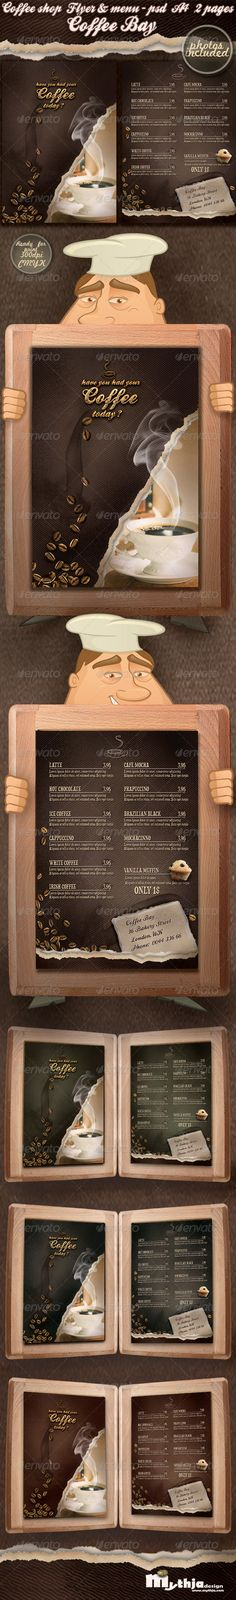 40 Beautiful Restaurant Menu Templates and Designs - Design - cafe menu templates free download